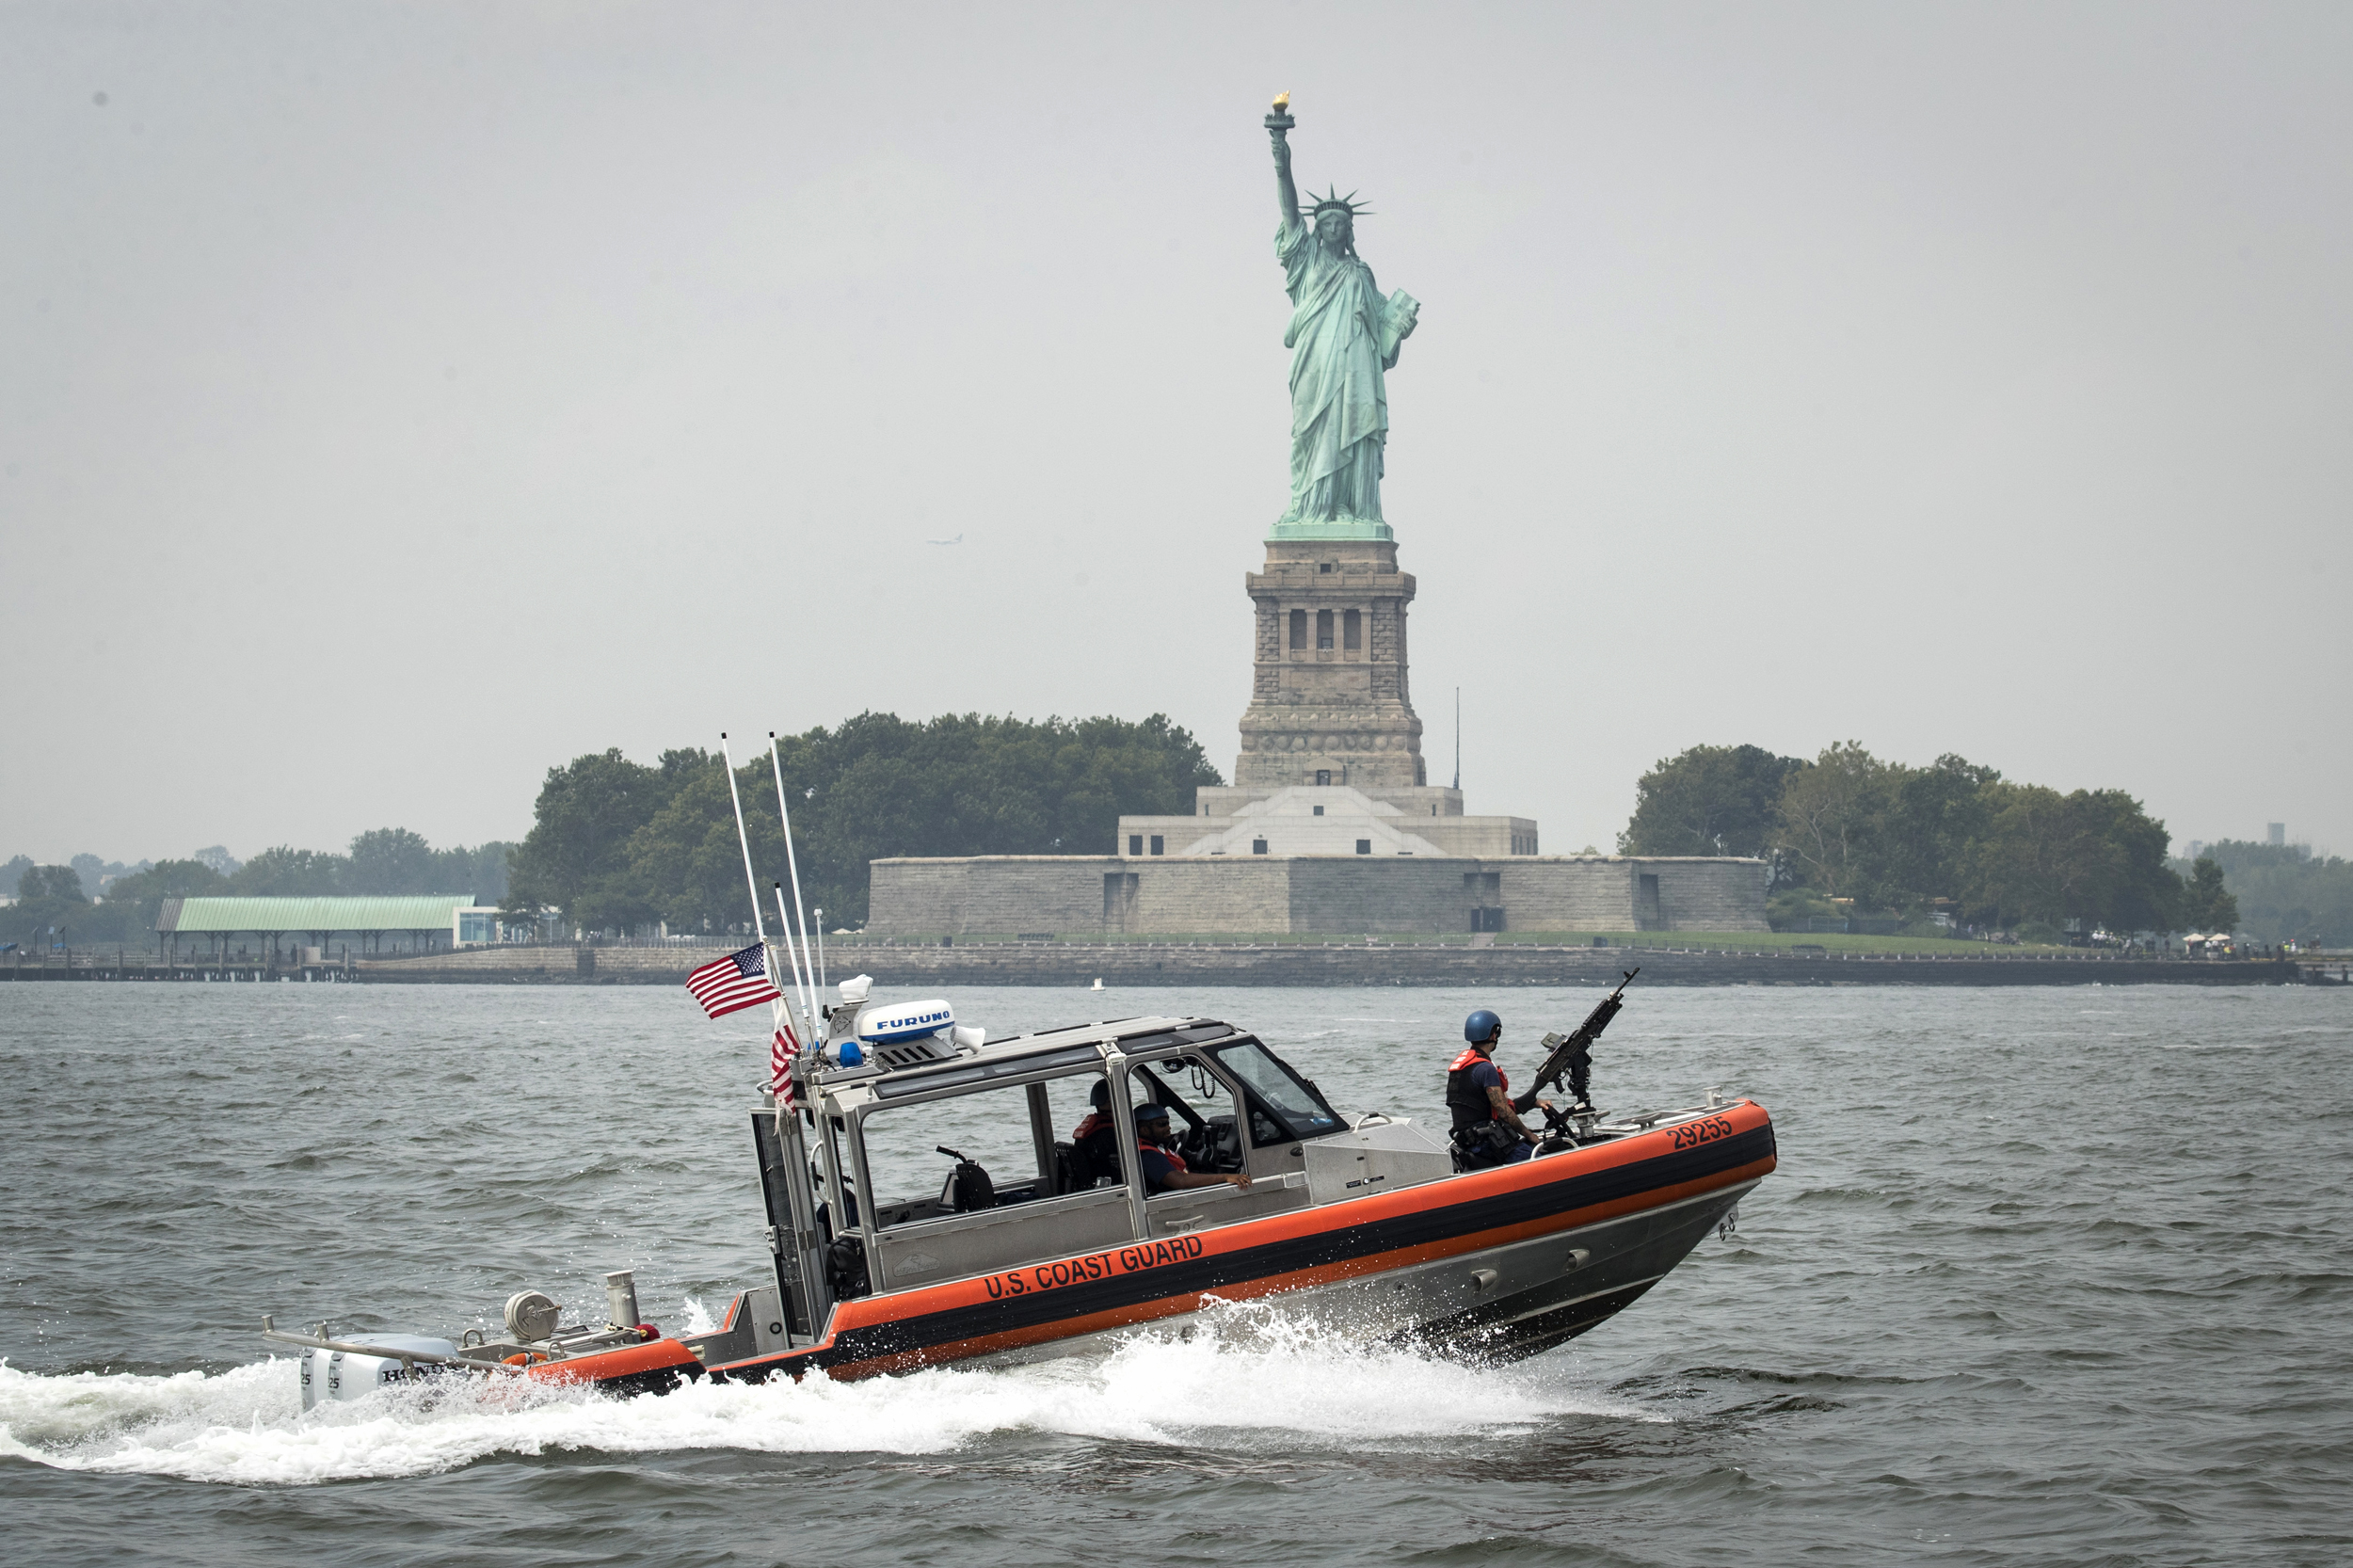 42 000 coast guard members are the only military branch to work